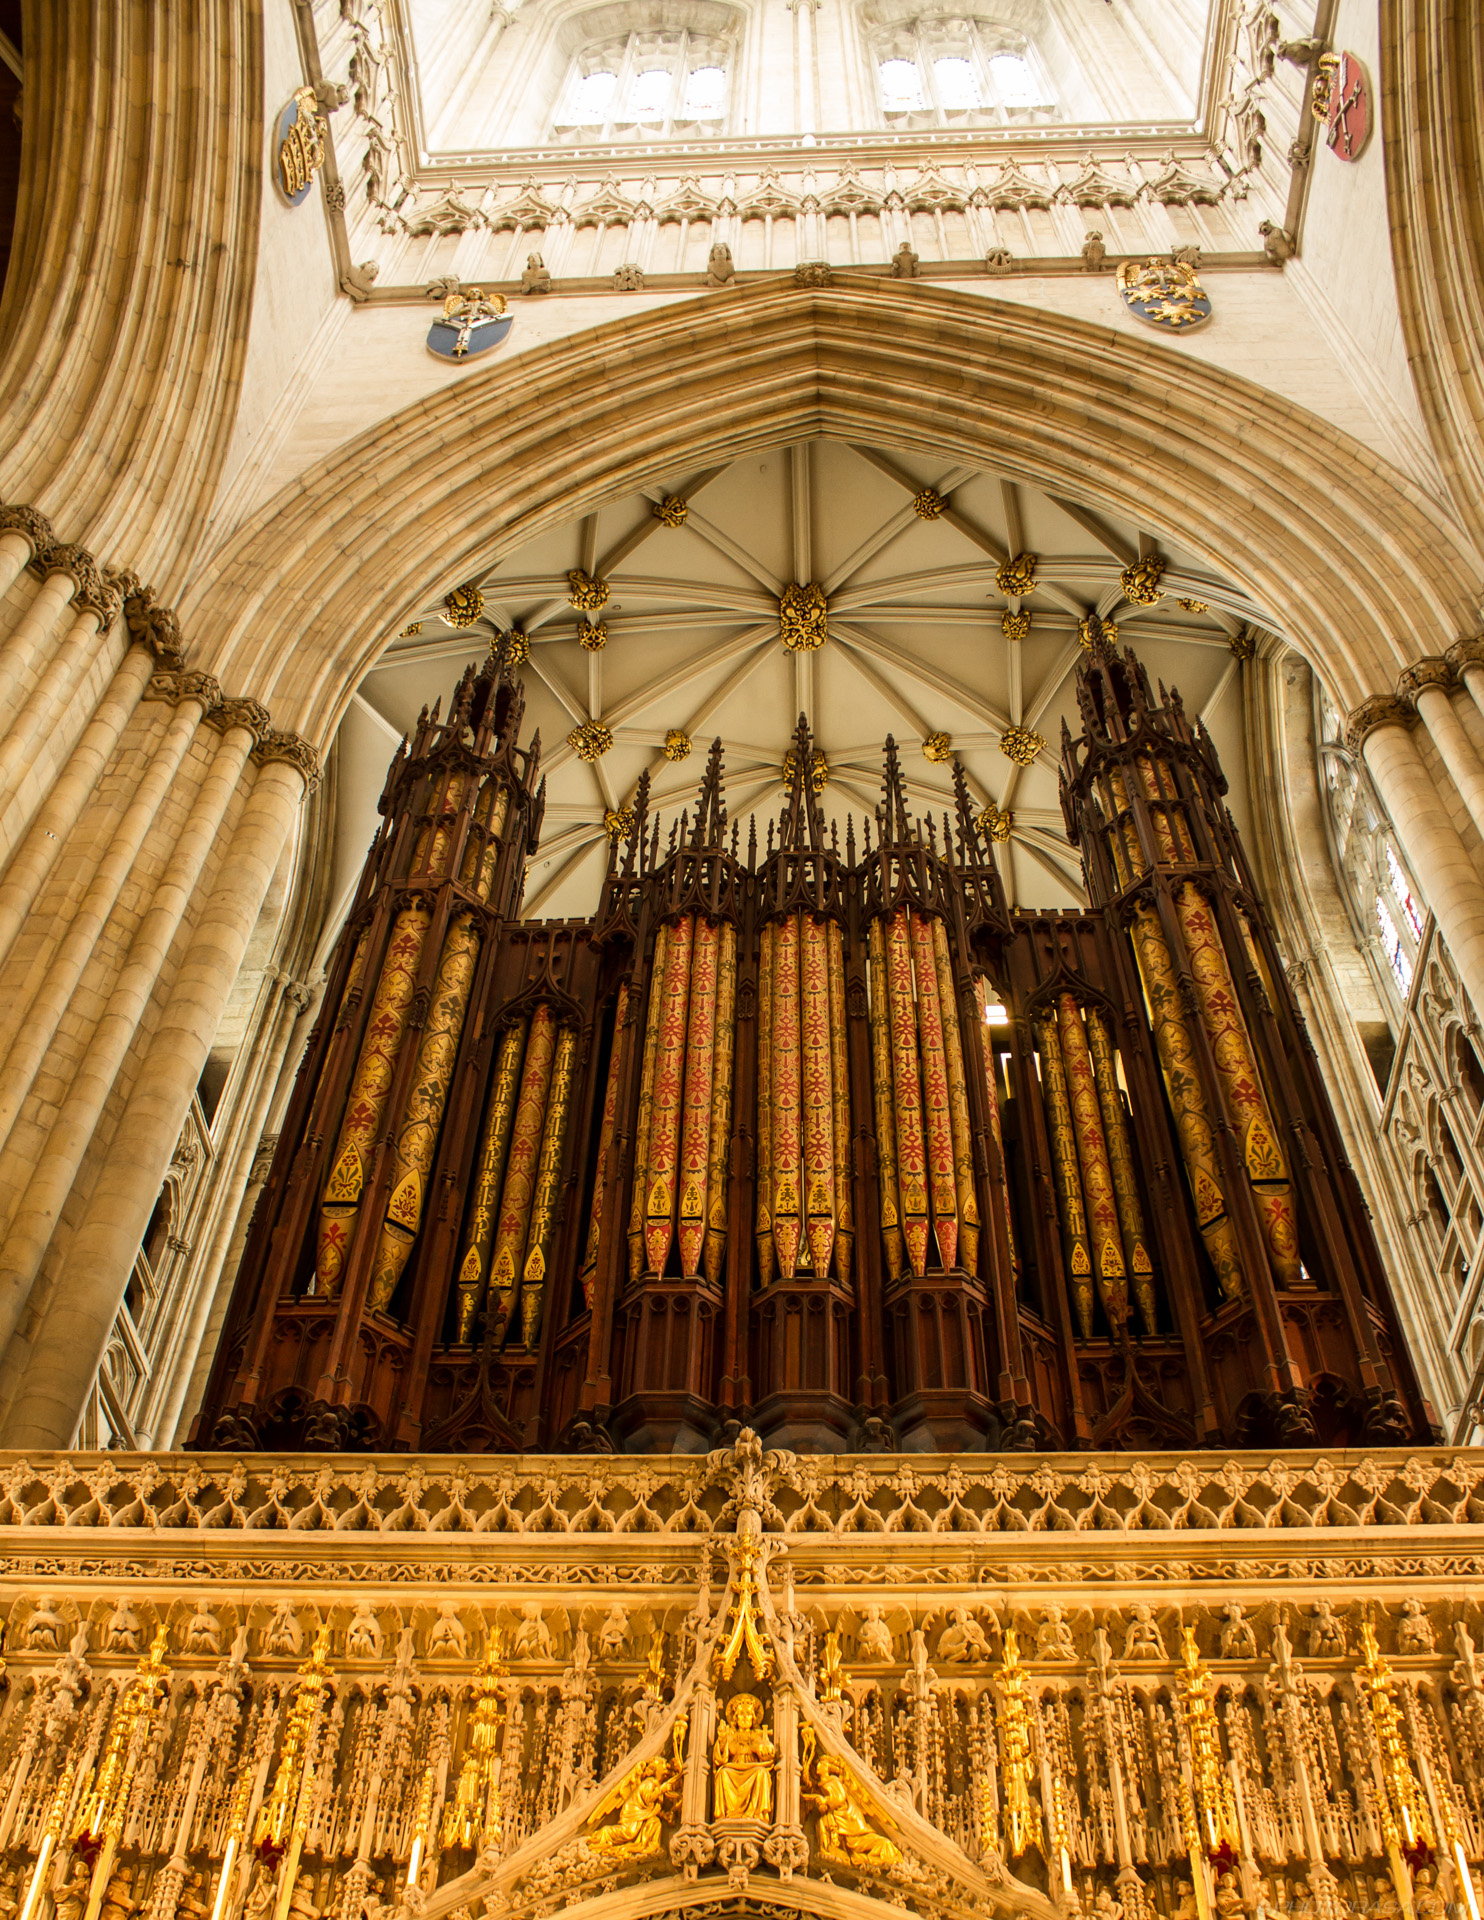 http://photorasa.com/yorkminster-cathedral/majestic-cathedral-organ/